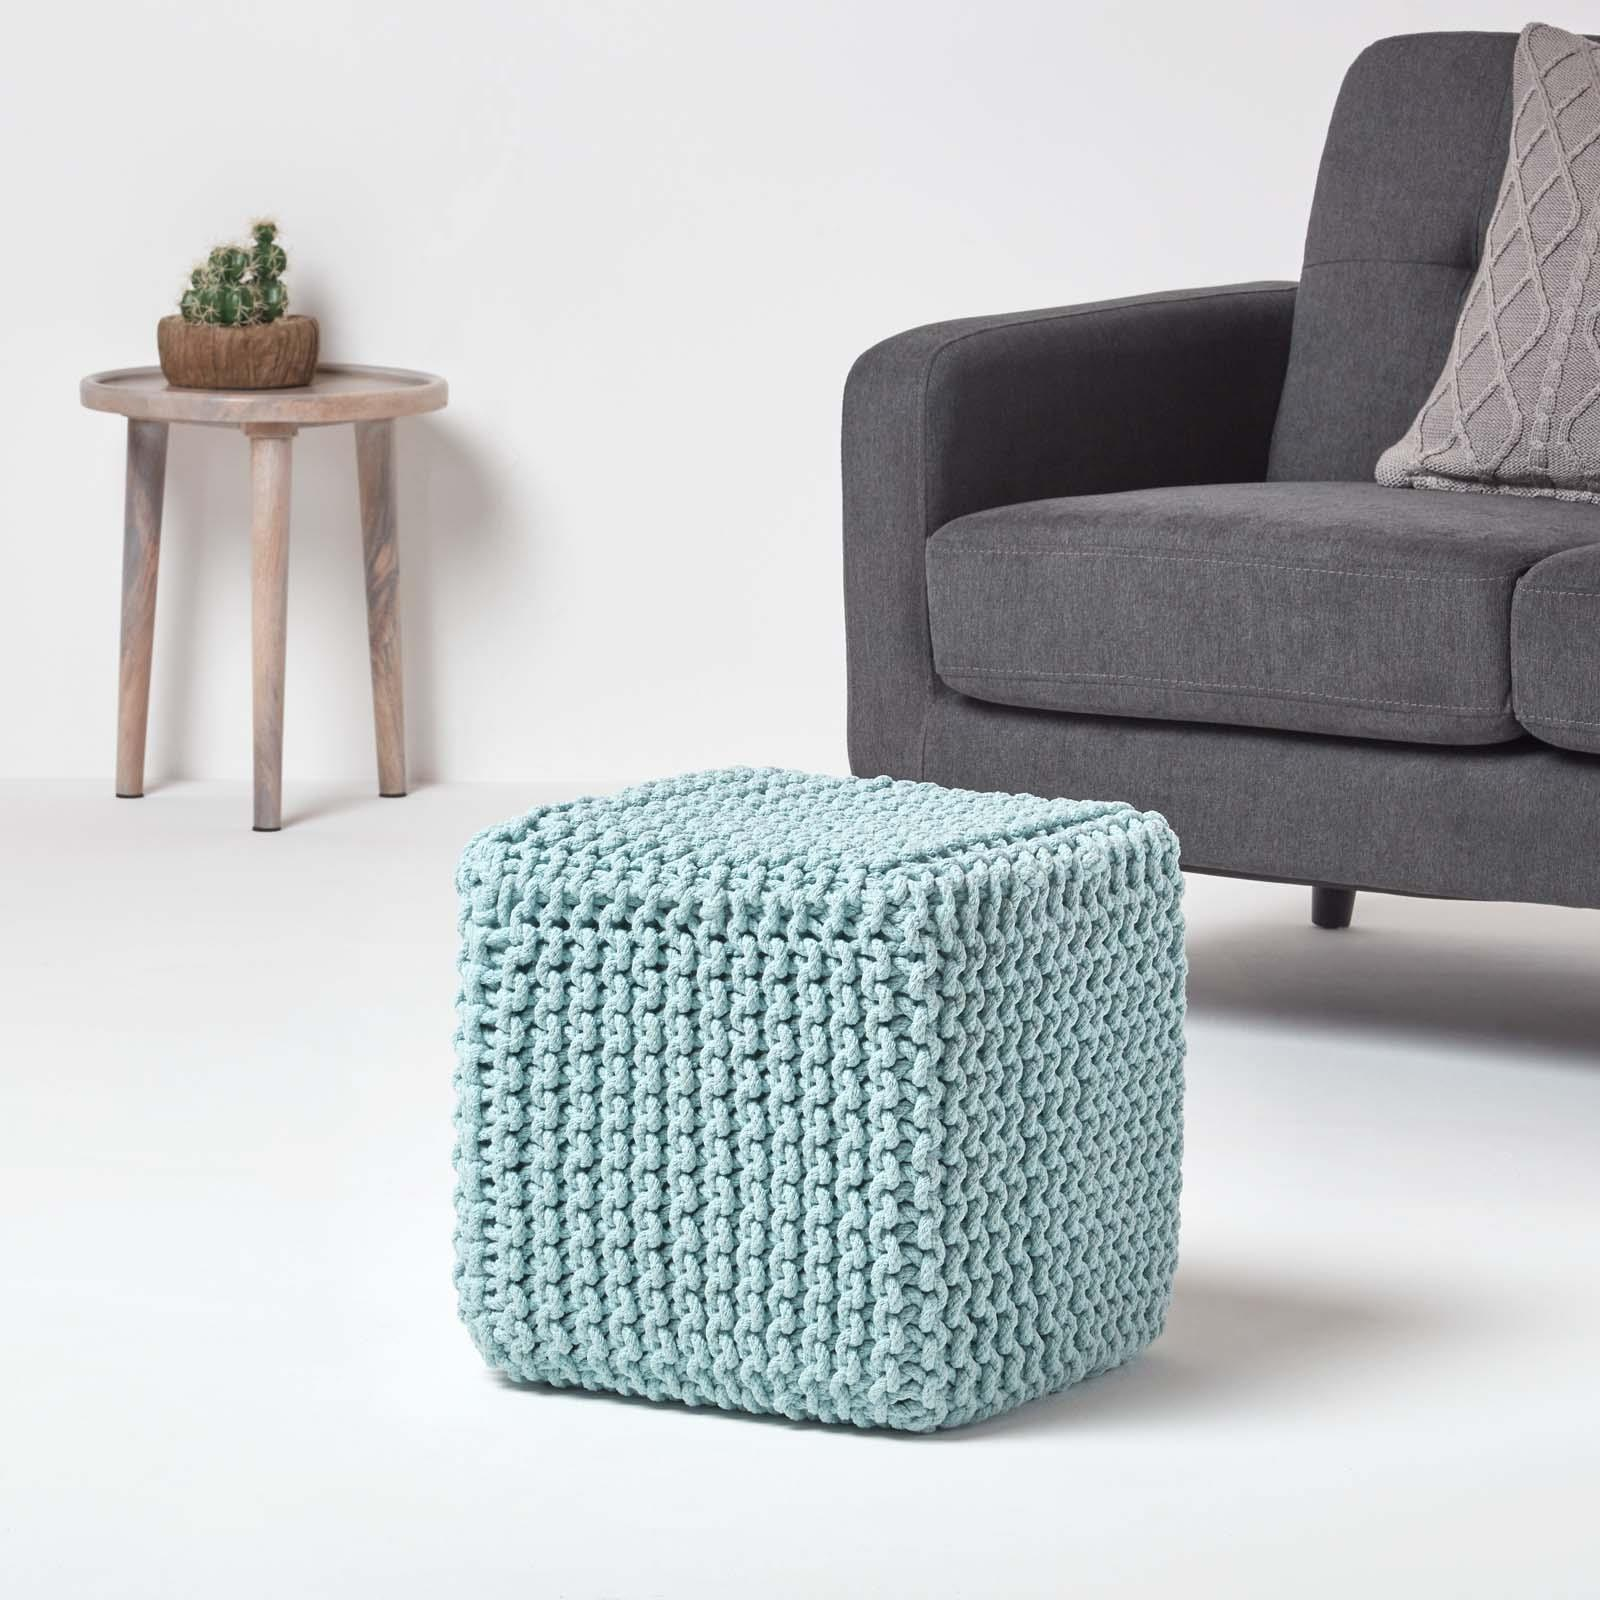 Hand-Knitted-100-Cotton-Pouffes-Round-Sphere-Or-Cube-Square-Chunky-Footstools thumbnail 134